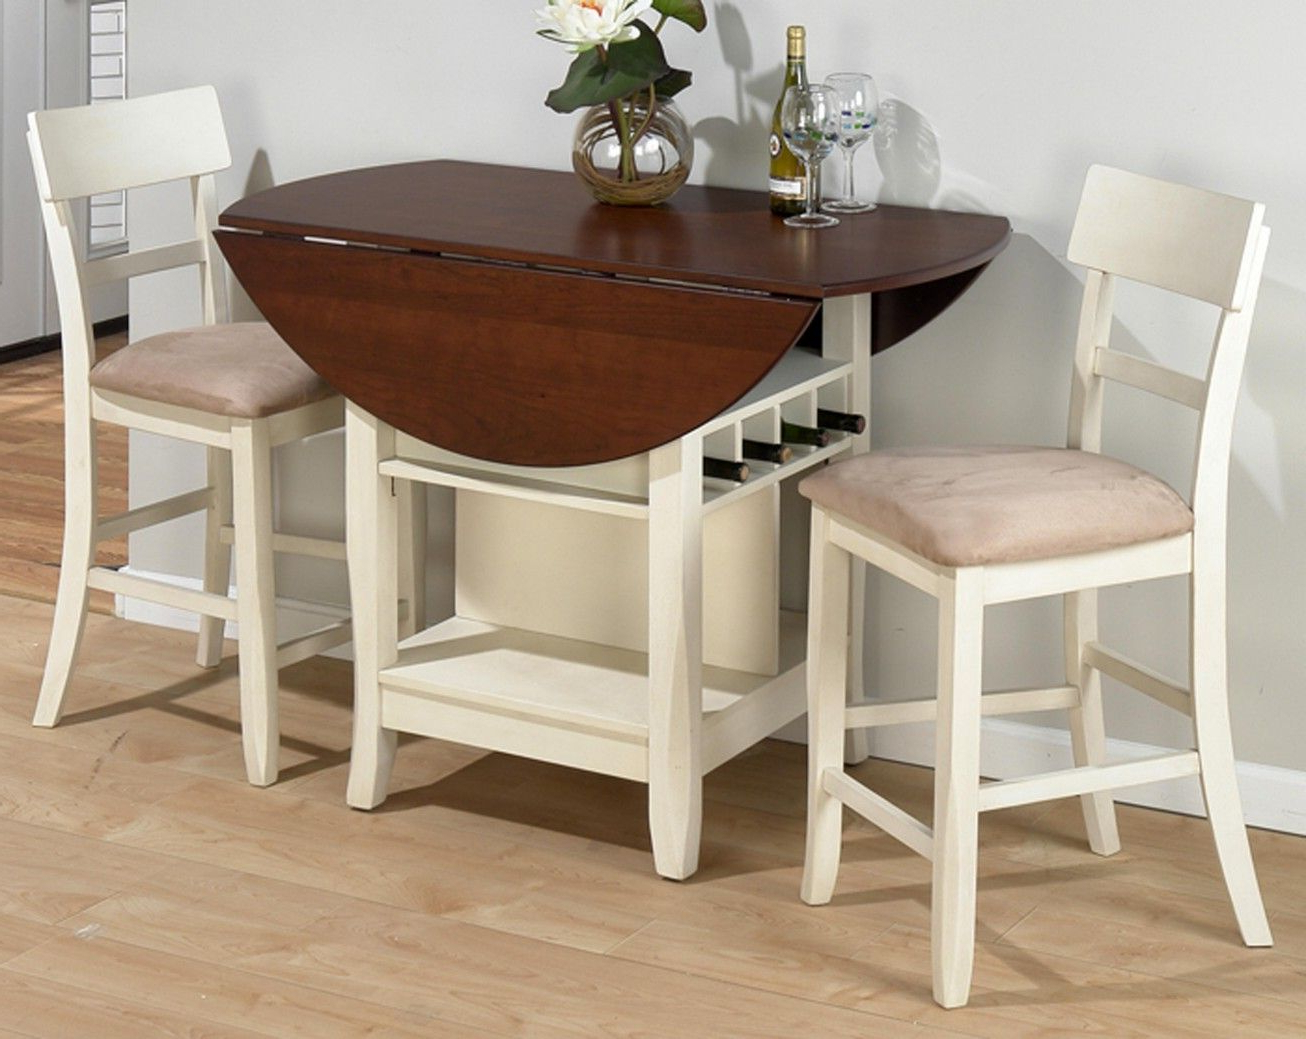 Antique White Shayne Drop Leaf Kitchen Tables Throughout Fashionable Statue Of Compact Dining Space Arrangement With Drop Leaf (View 8 of 25)